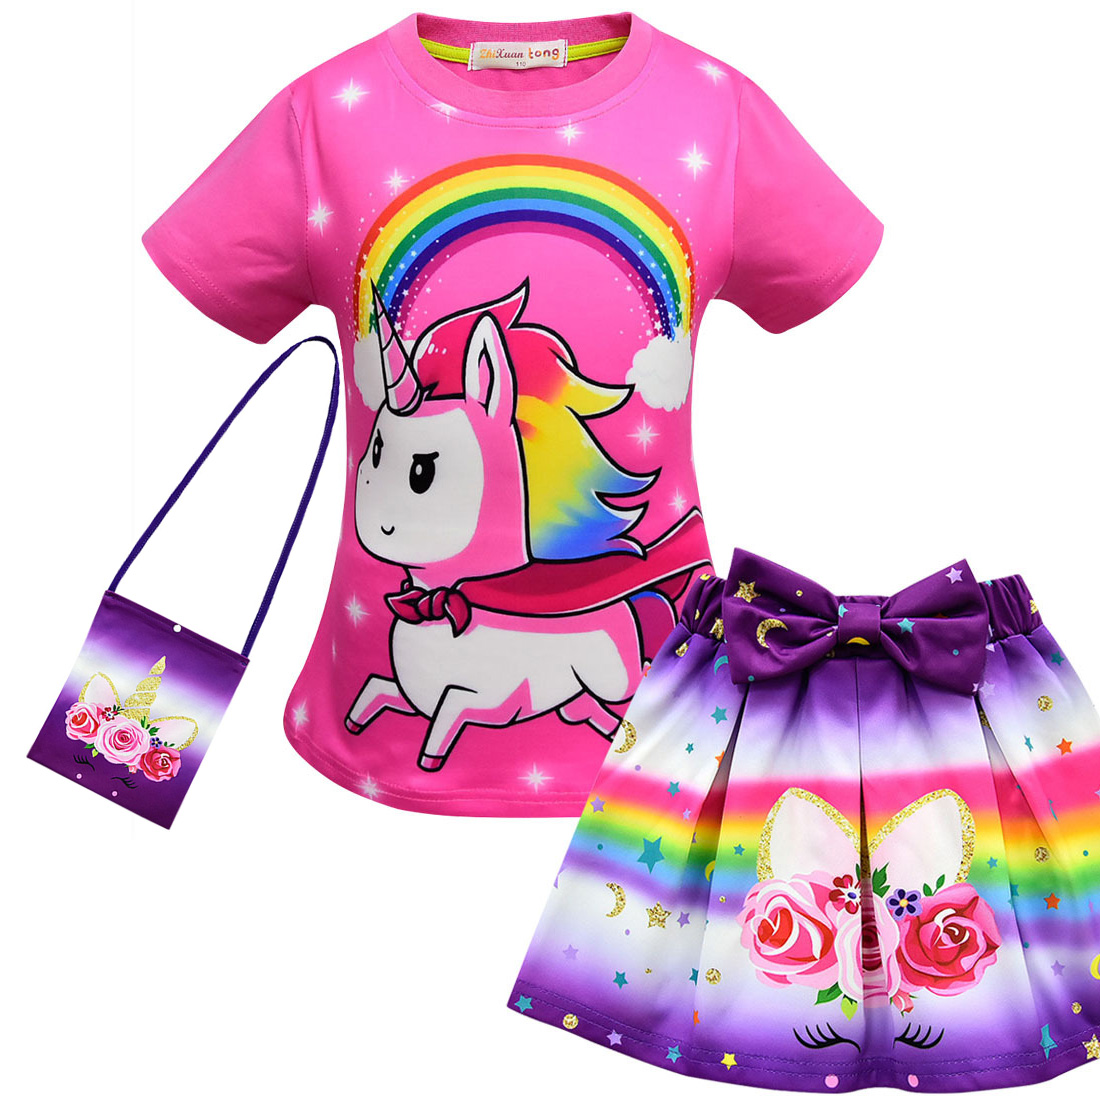 Girls Suits 2019 Summer Style Kids Beautiful Unicorn Children OF-neck Clothing Short Skirt Suit With Bag 3Pcs Christmas Clothes